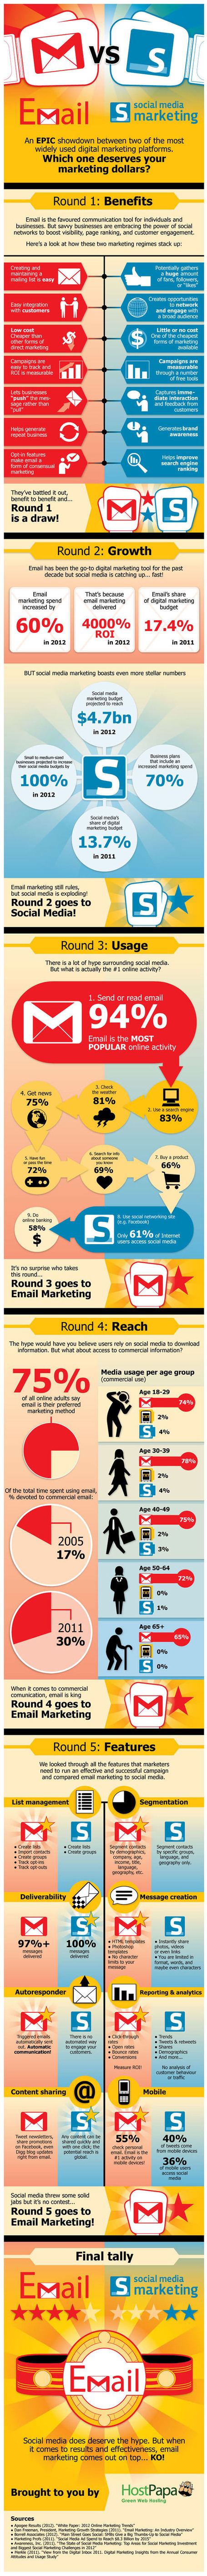 Email Marketing vs Social Media Marketing | Social Media (network, technology, blog, community, virtual reality, etc...) | Scoop.it